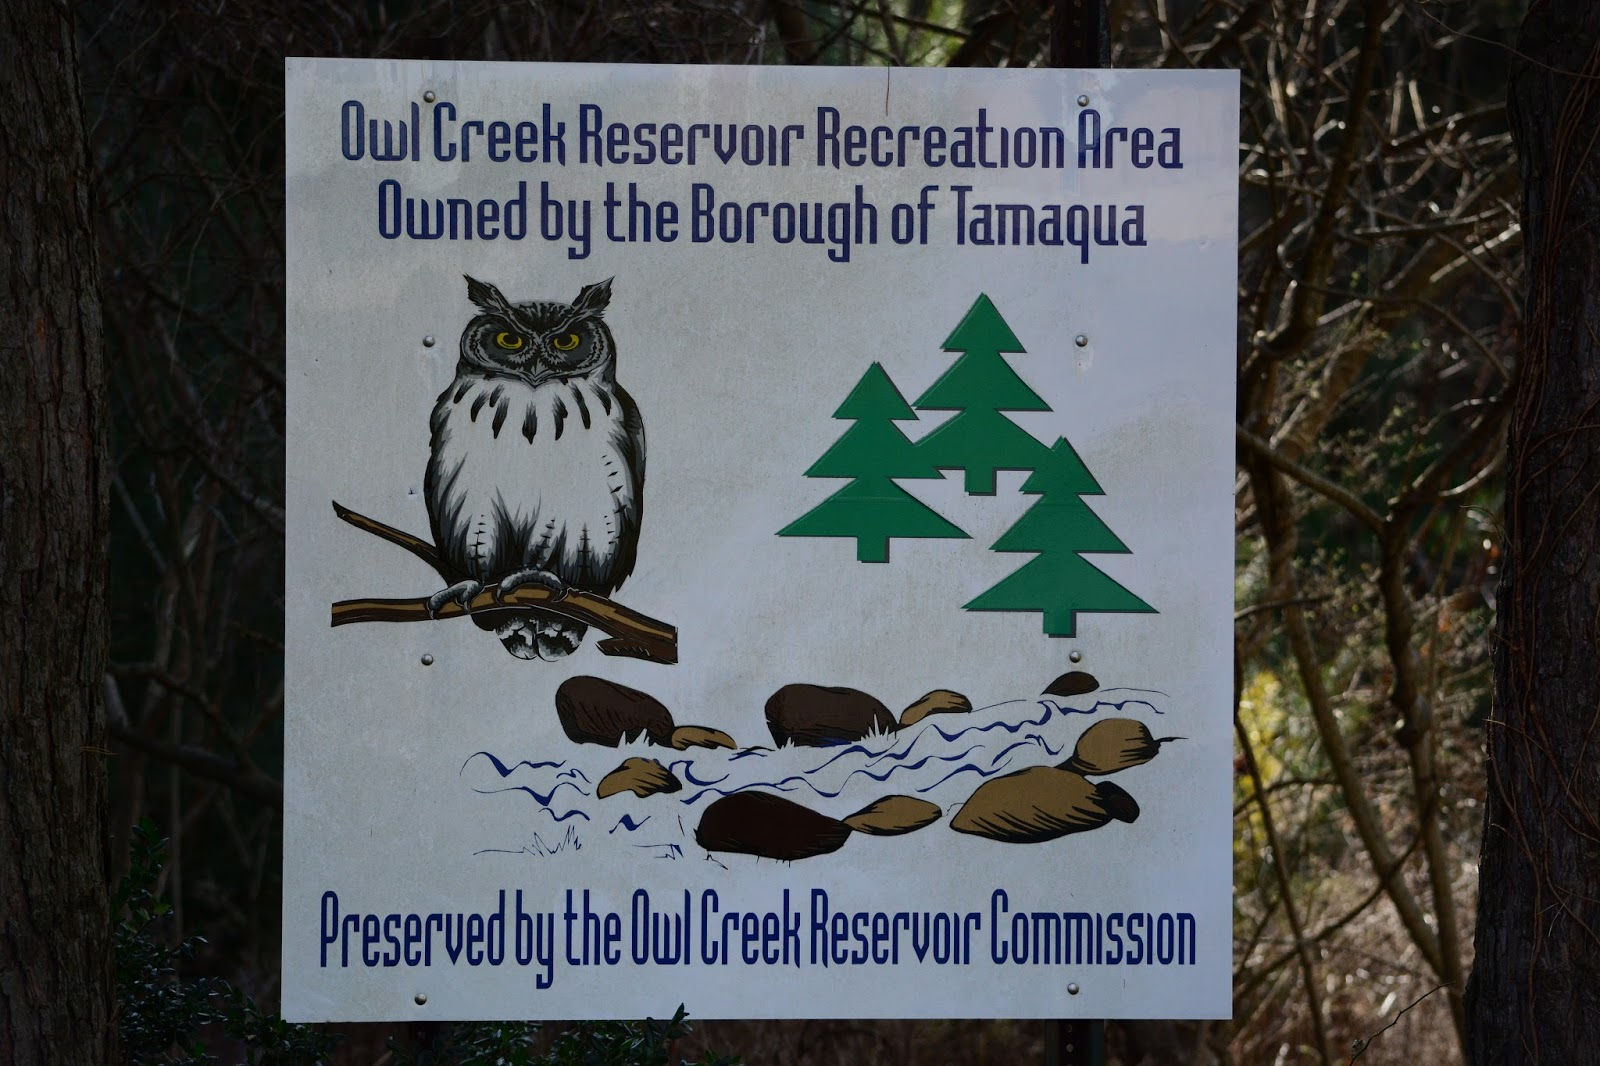 The owl creek recurrence